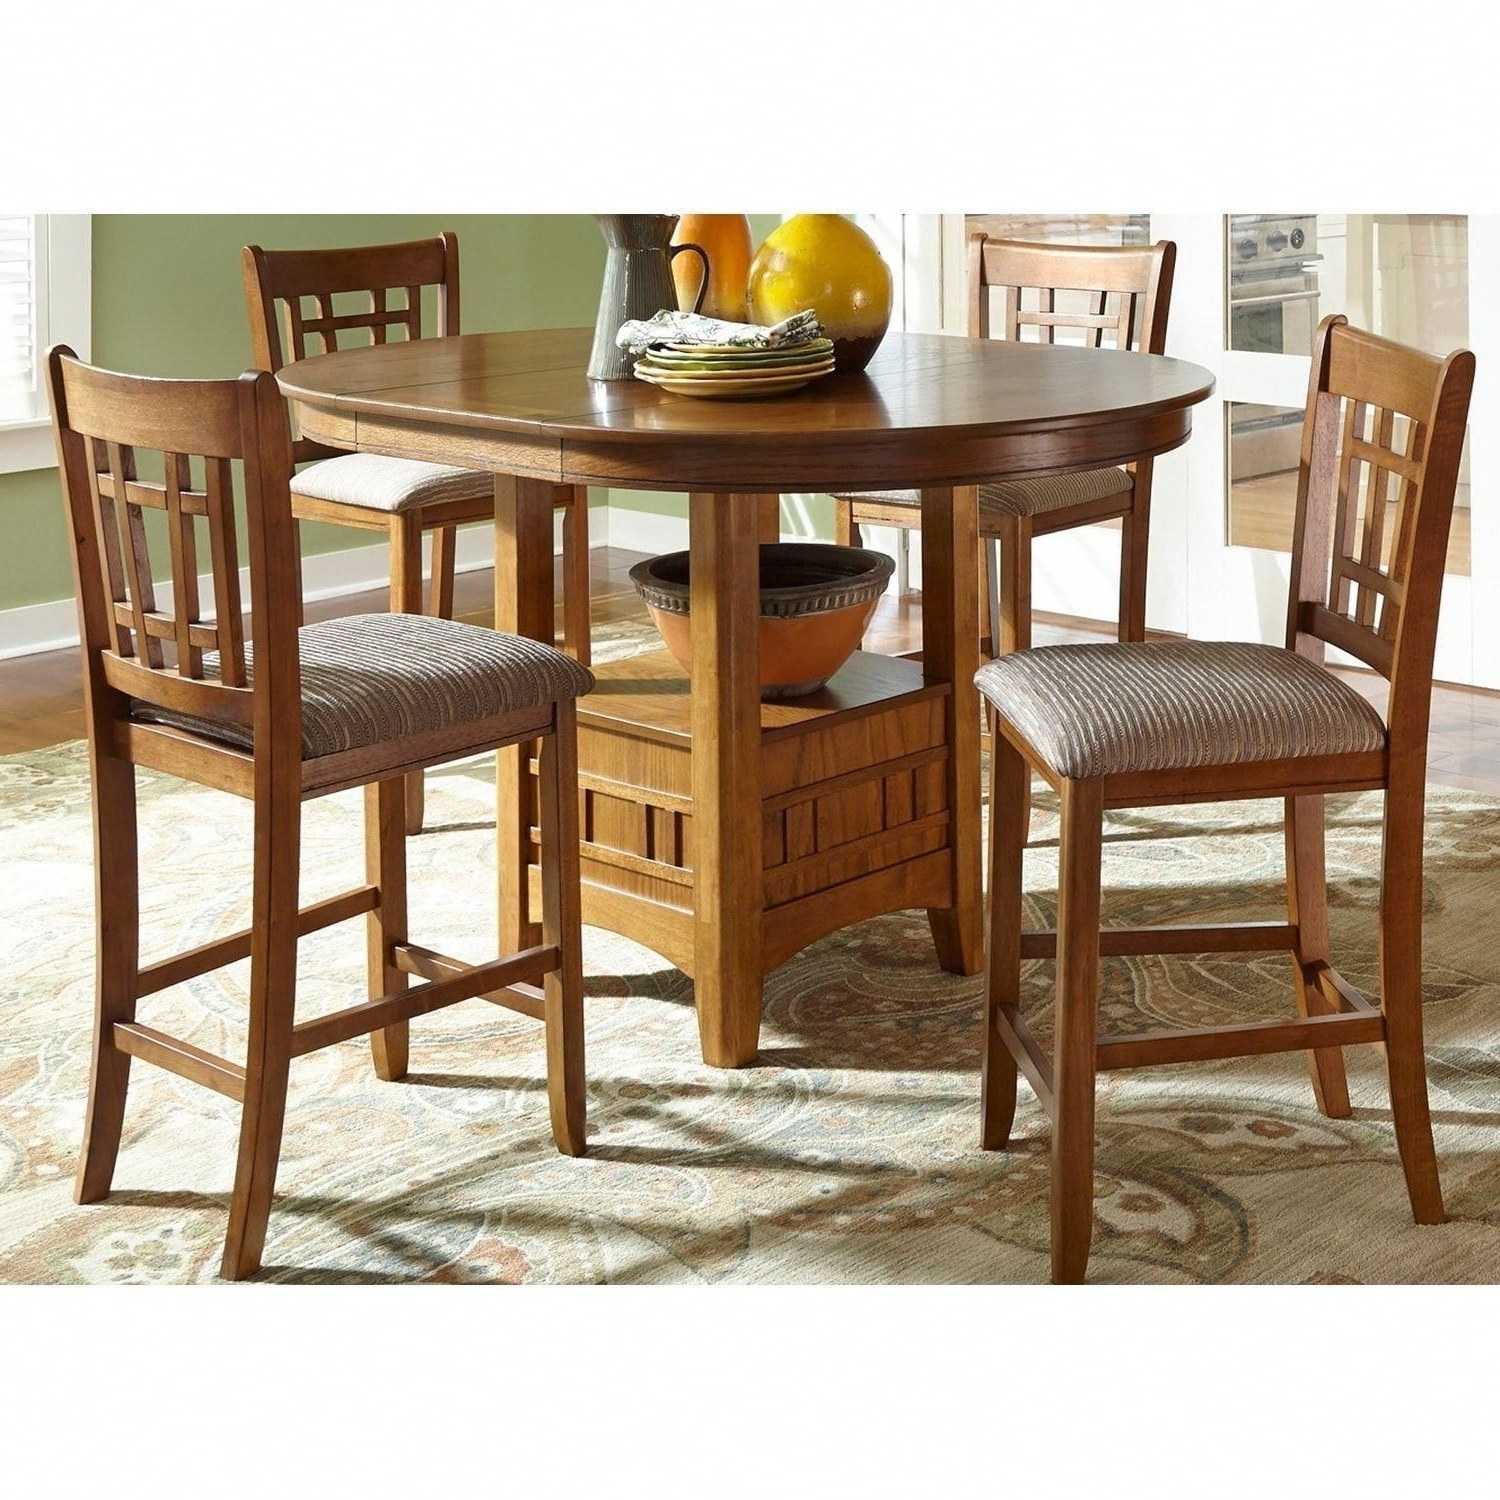 Liberty Santa Rosa Mission Oak Wood 5 Piece Counter Height Pub Set Within Newest Craftsman 5 Piece Round Dining Sets With Side Chairs (View 13 of 25)